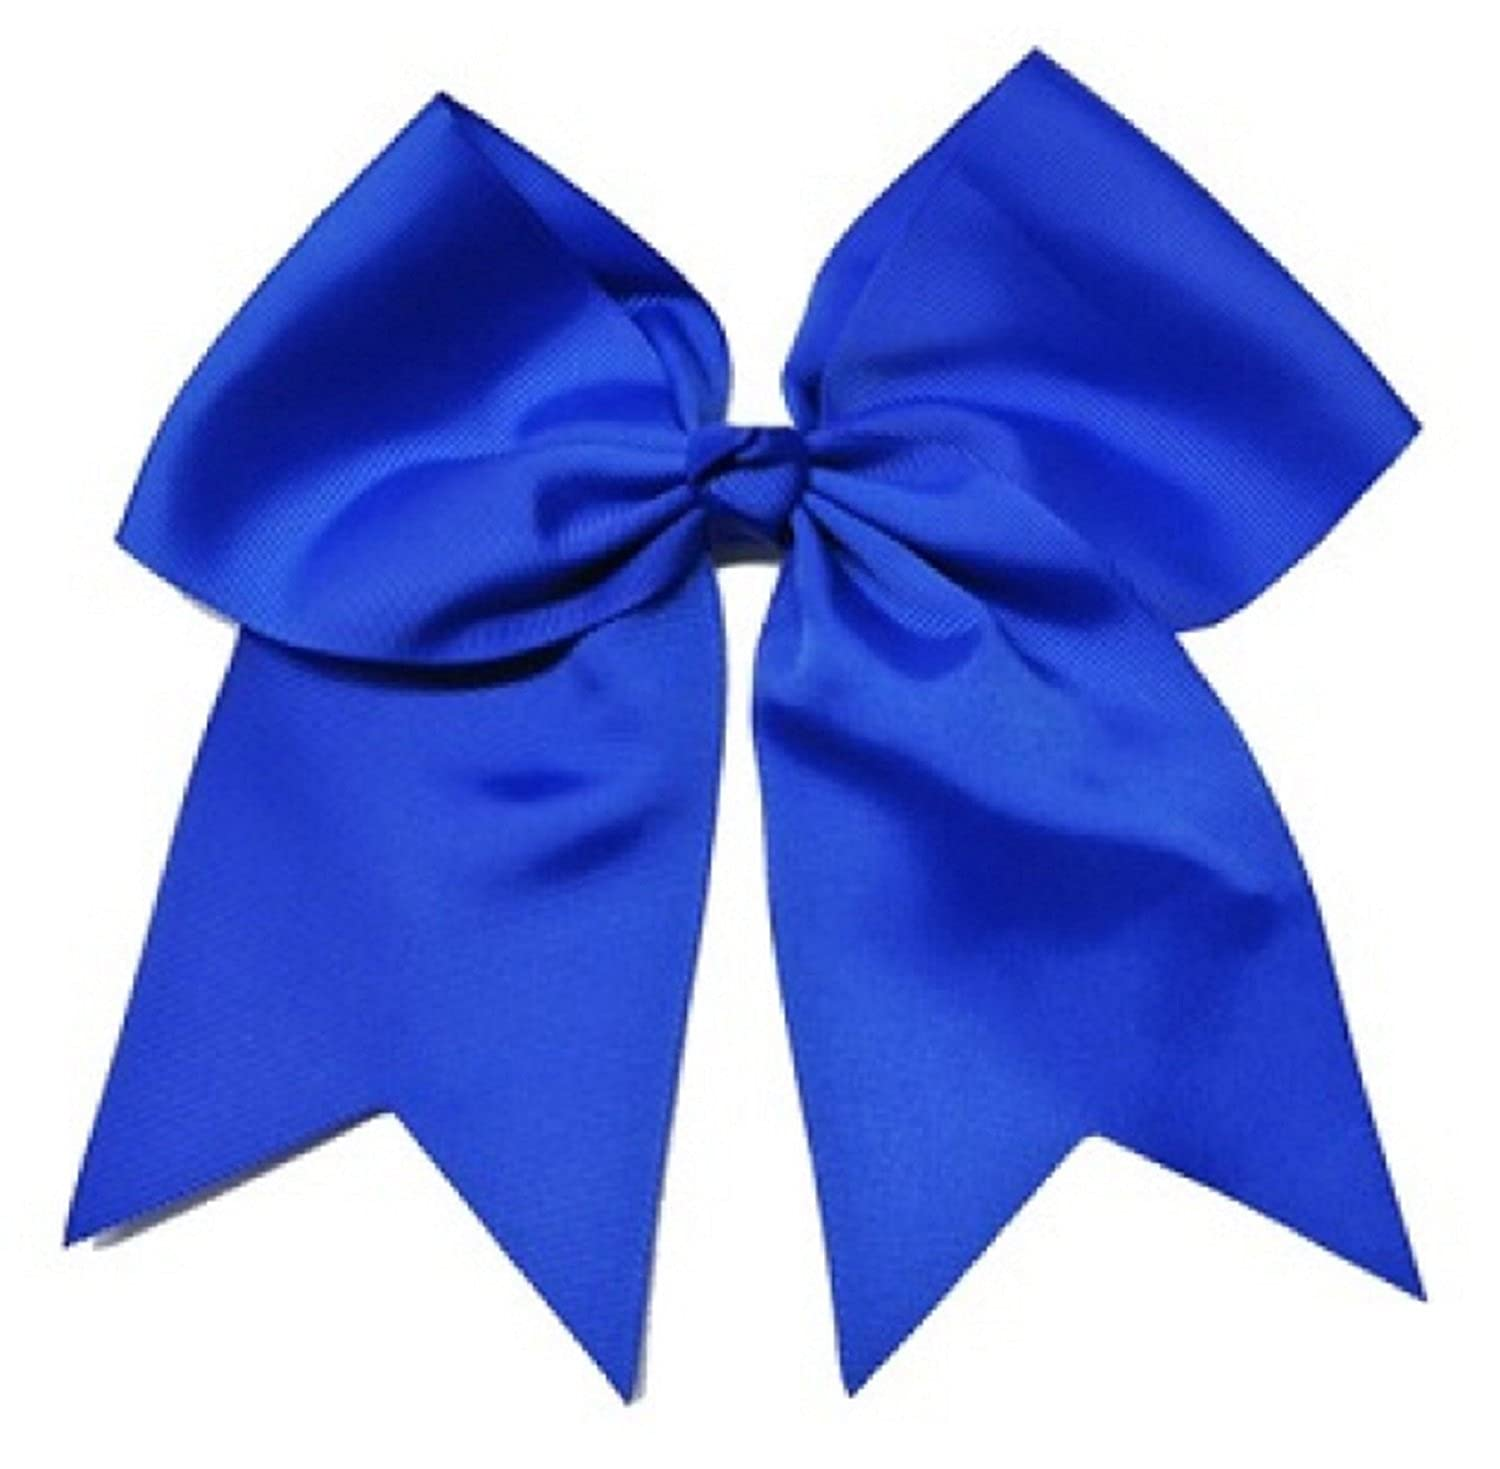 Kenz Laurenz Cheer Bows Blue Cheerleading Softball - Gifts for Girls and Women Team Bow with Ponytail Holder Complete your Cheerleader Outfit Uniform Strong Hair Ties Bands Elastics 852668462023